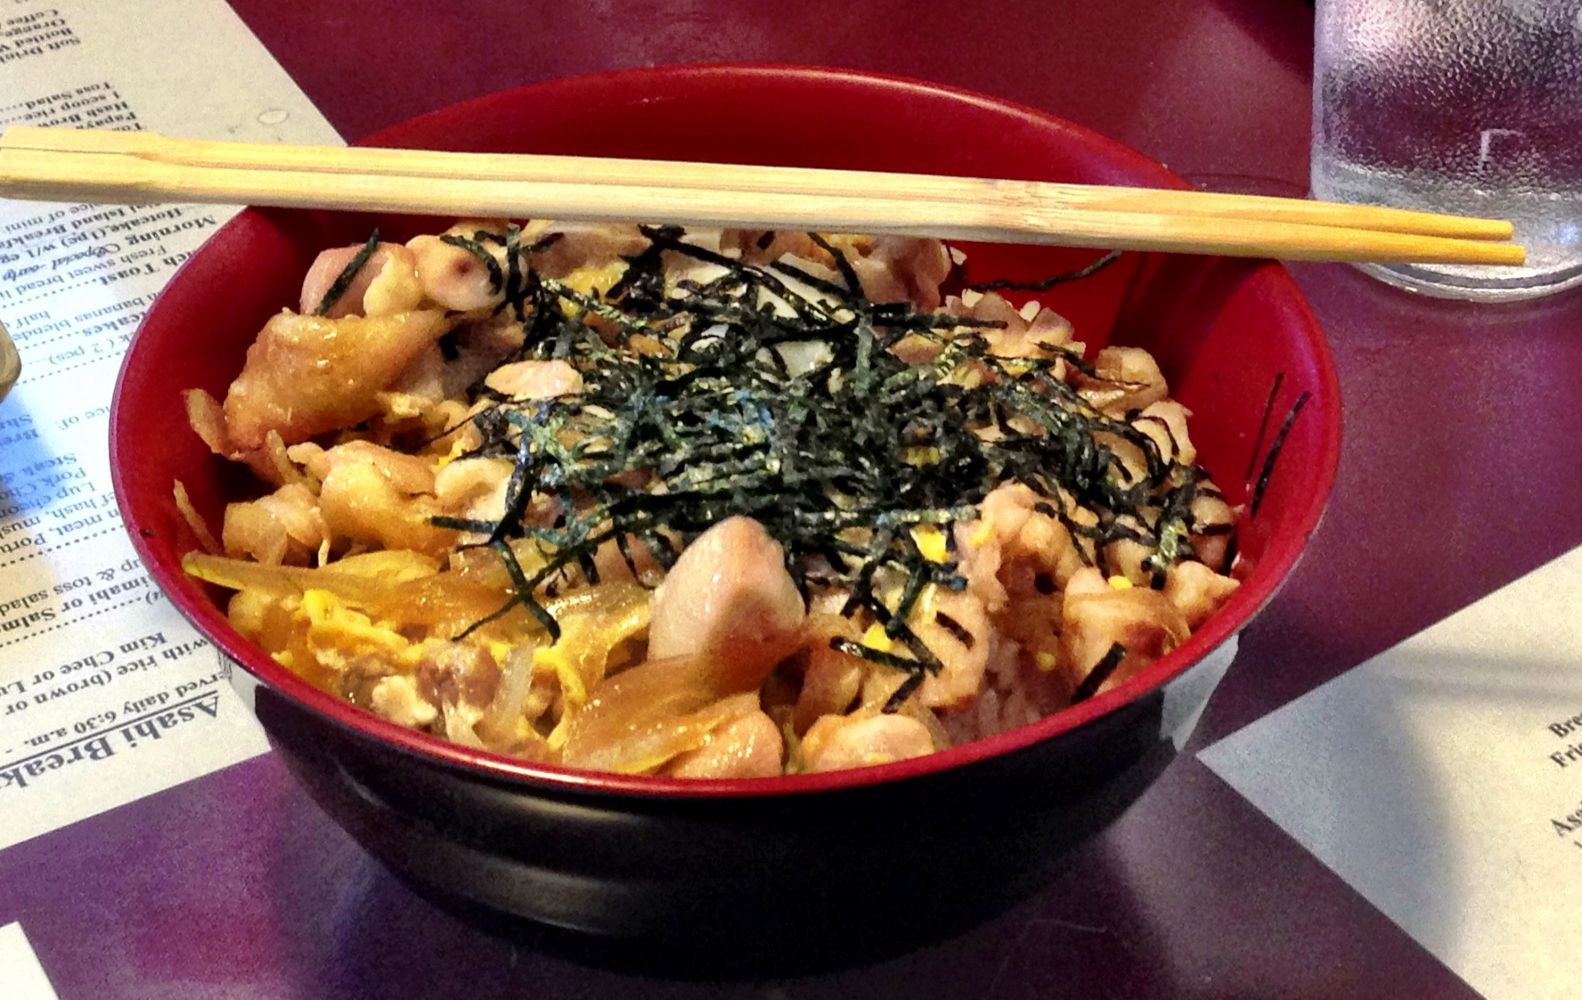 A bowl with a japanese dish and chopsticks